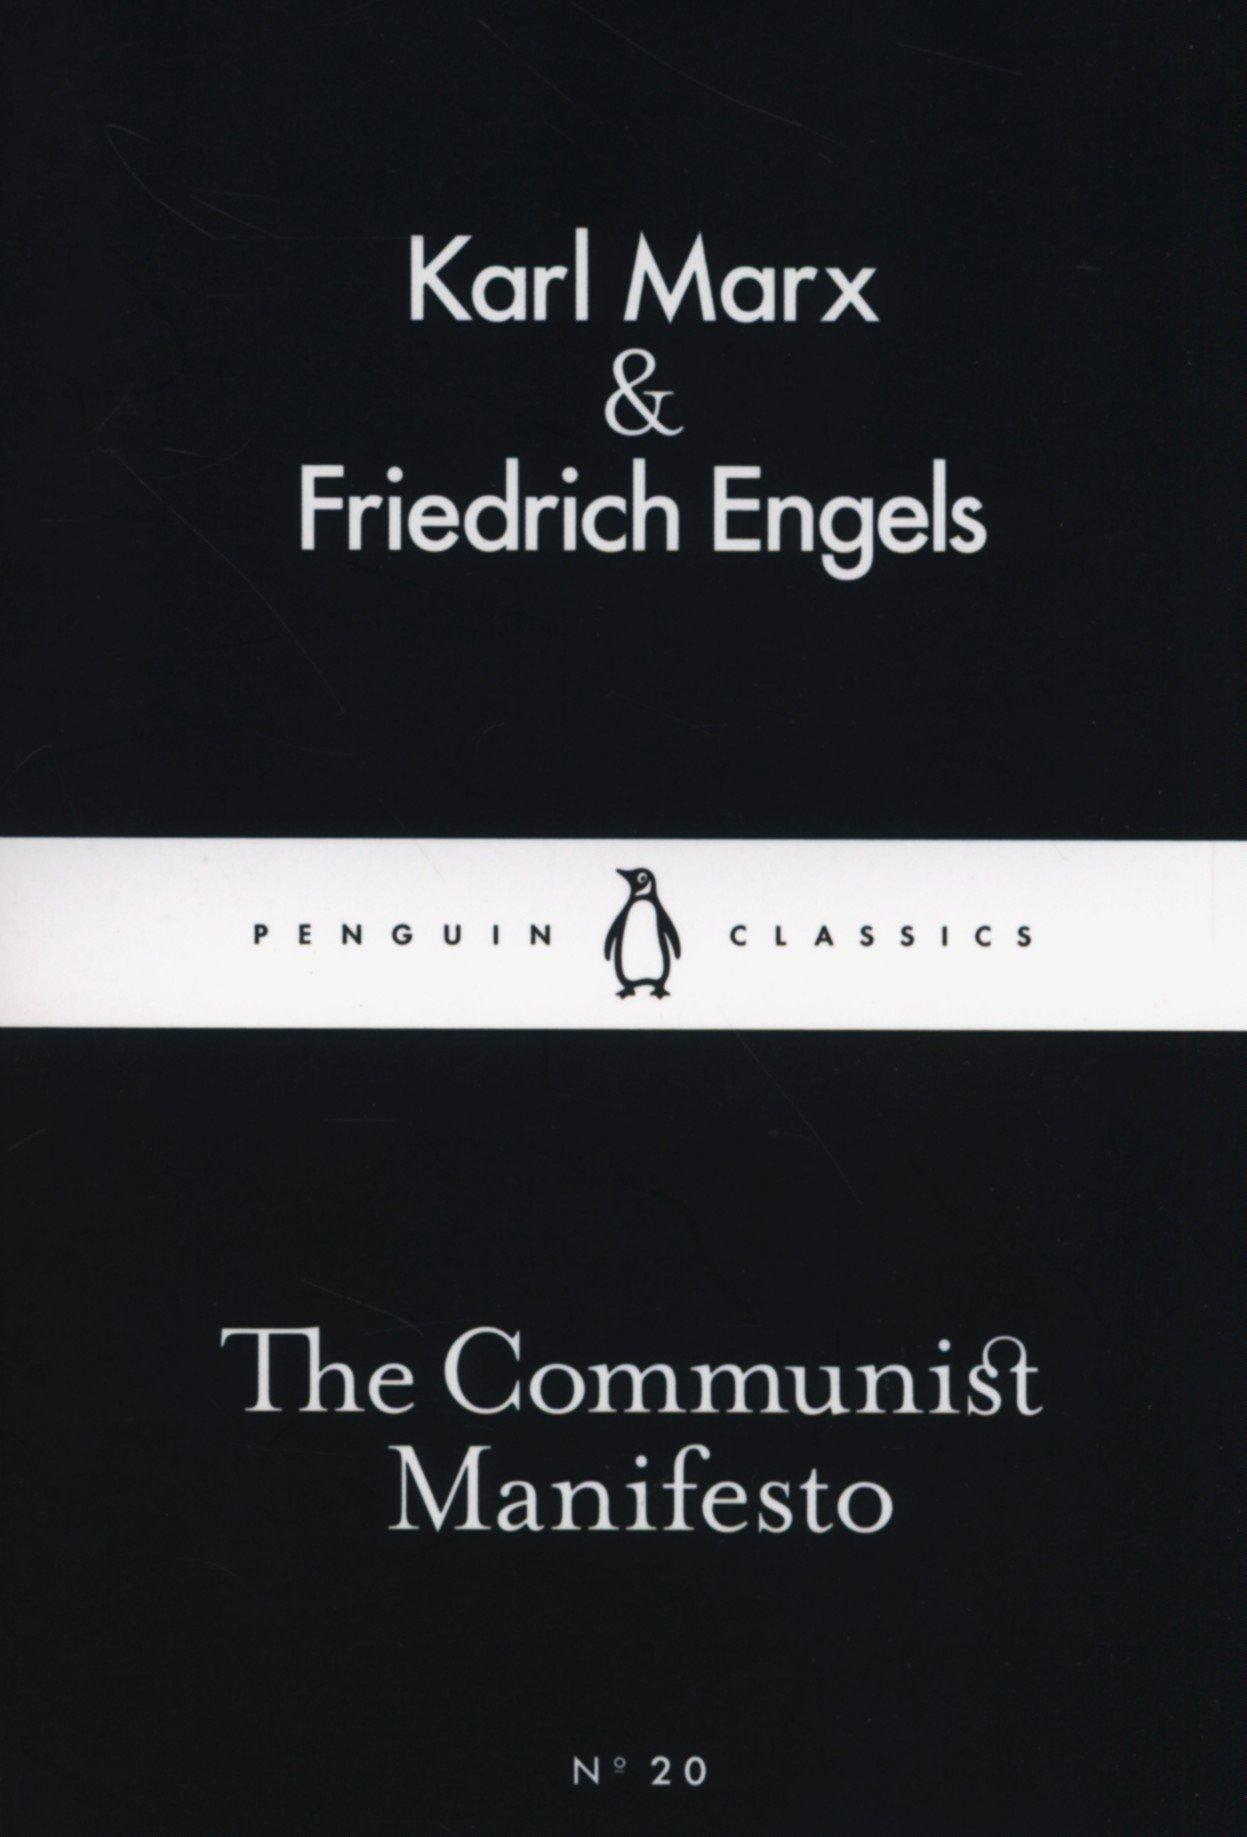 The Little Black Classics Communist Manifesto (Penguin Little Black Classics) By:Karl Marx; Friedrich Engels Eur:3,24 Ден1:69